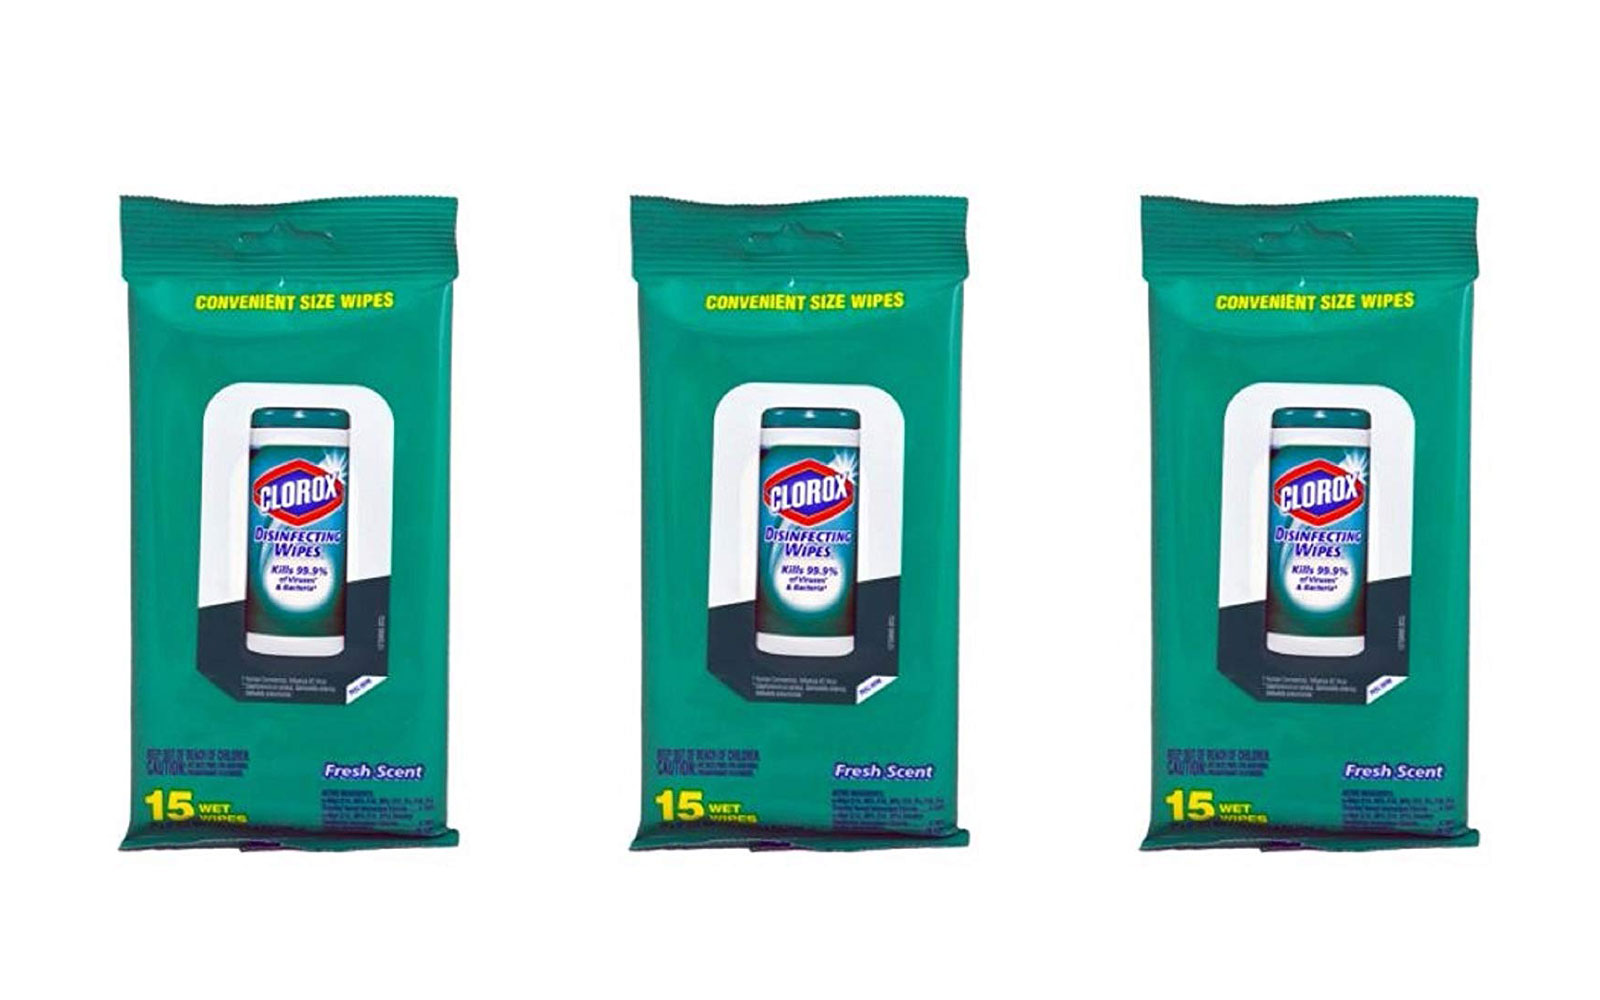 Clorox Travel Size Disinfectant Wipes